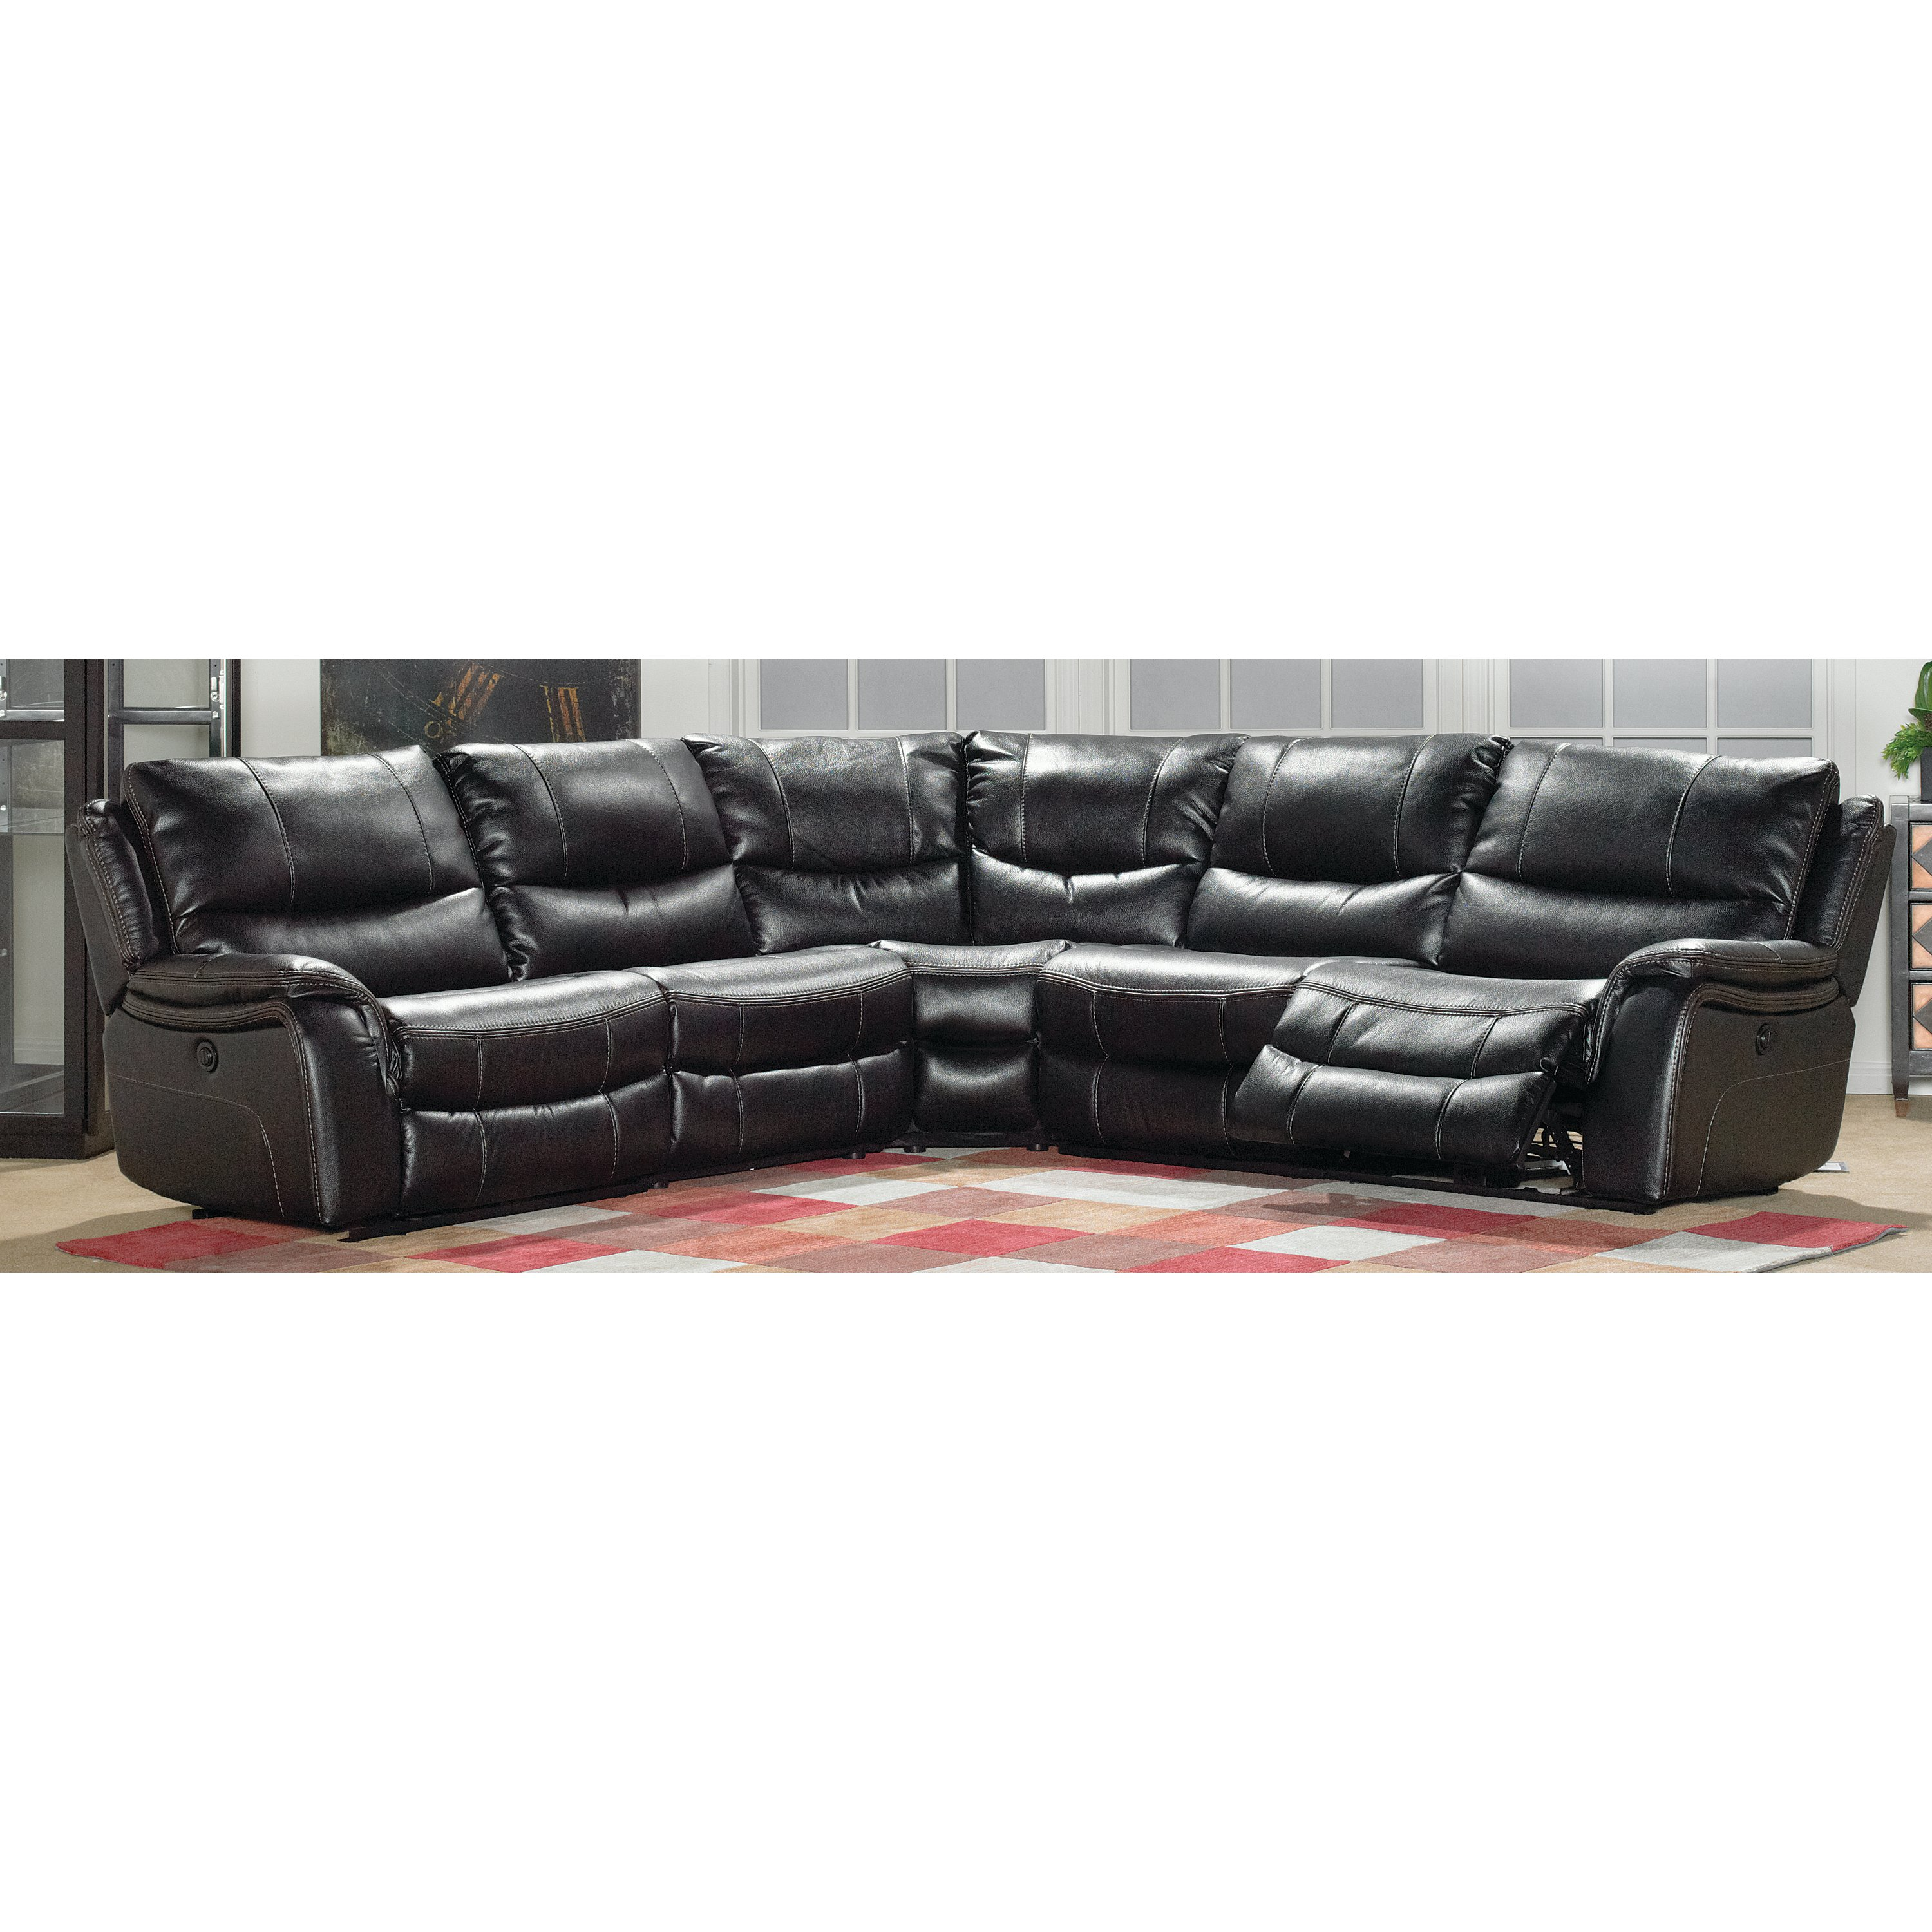 Shop sectional sofas and leather sectionals RC Willey Furniture